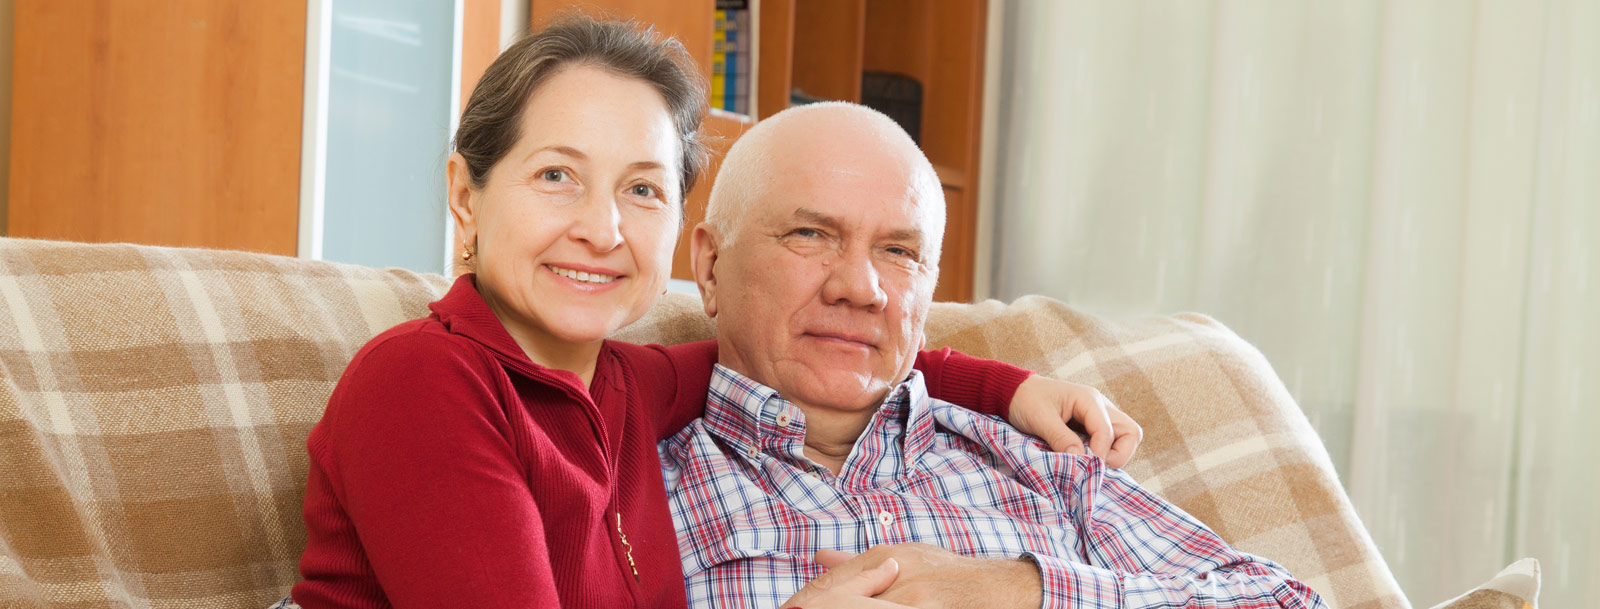 You can plan your gifting at the senior living facility in Olathe